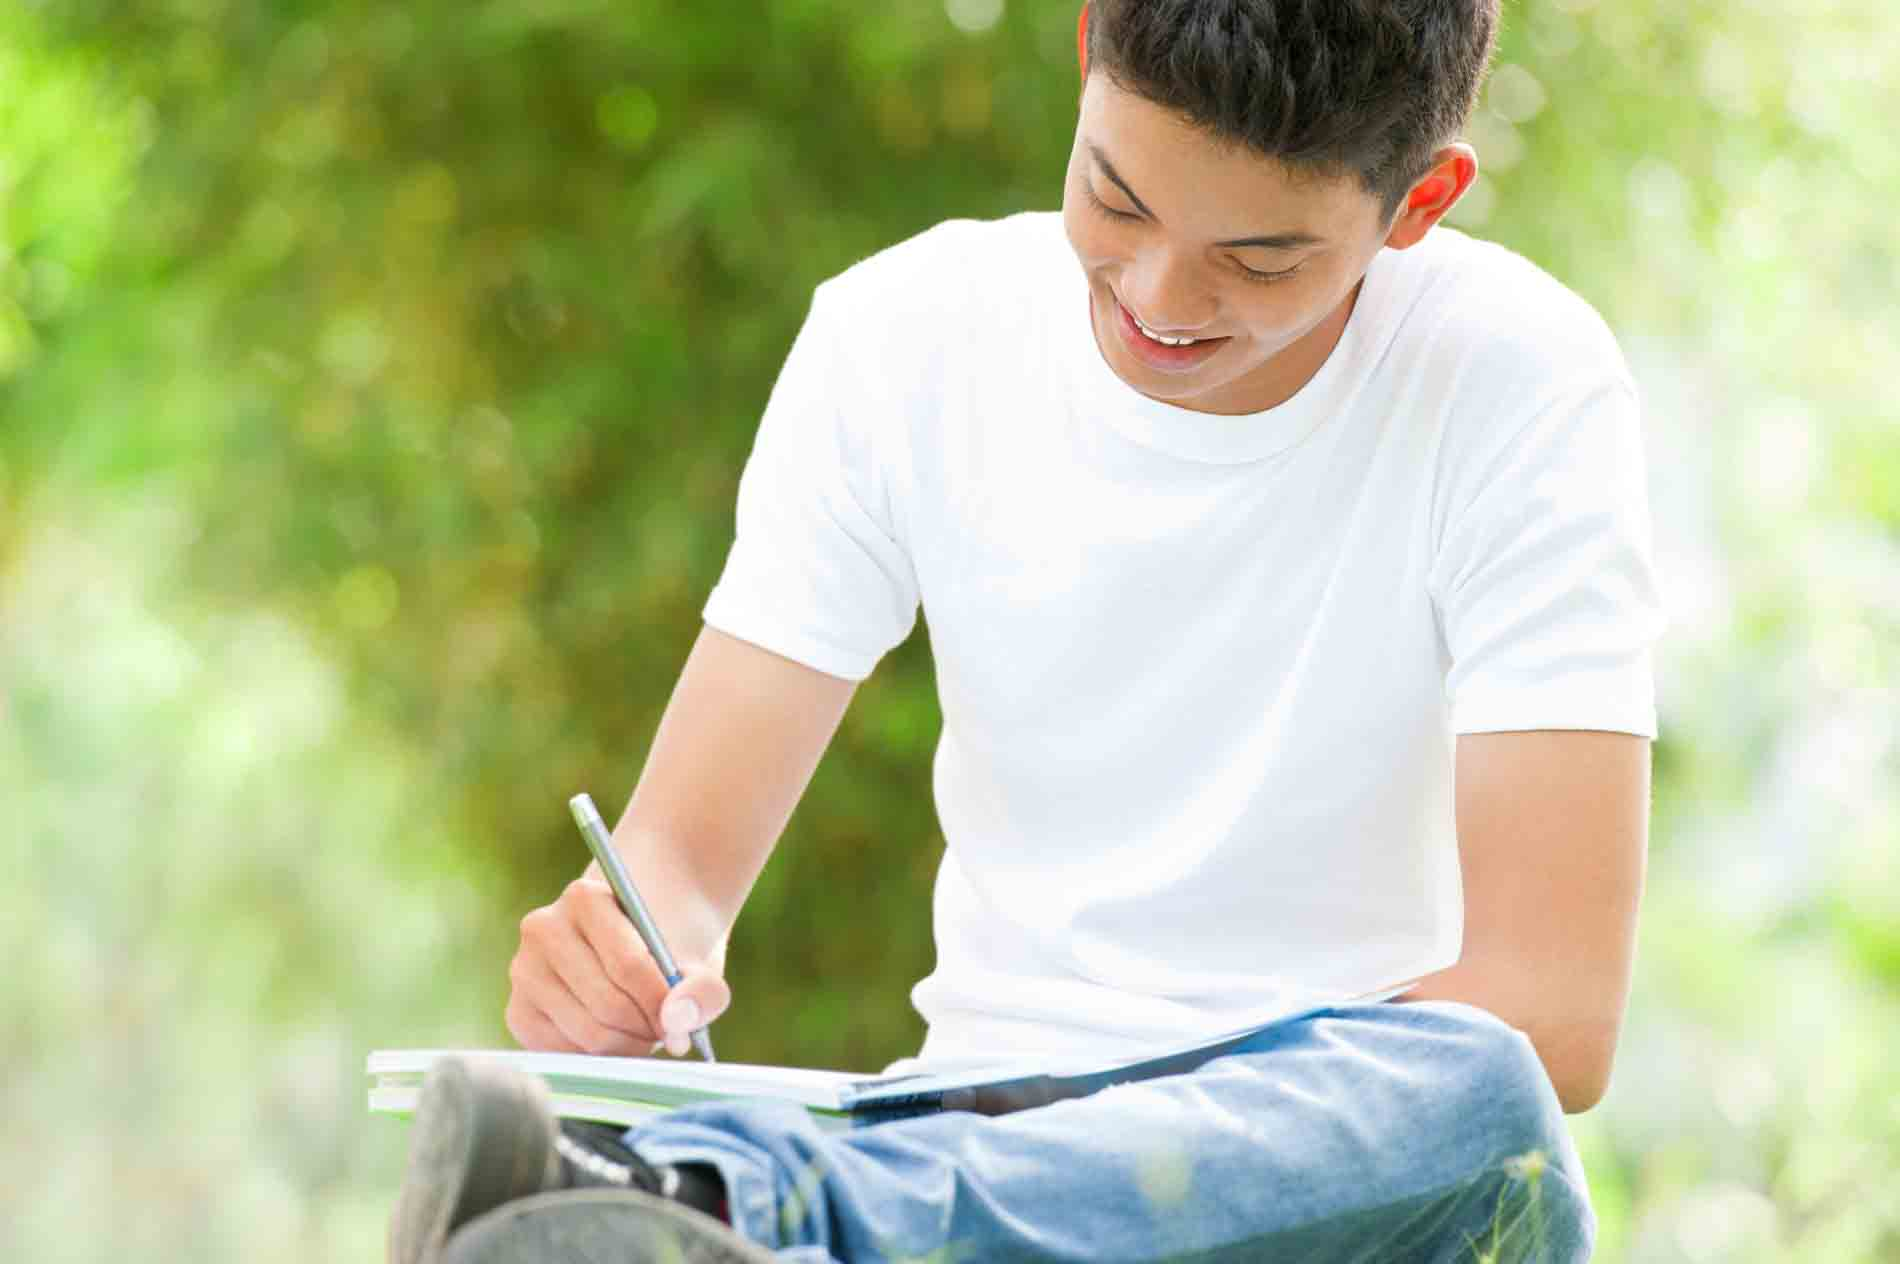 Learning Beyond Limits: College Admissions Writing Services